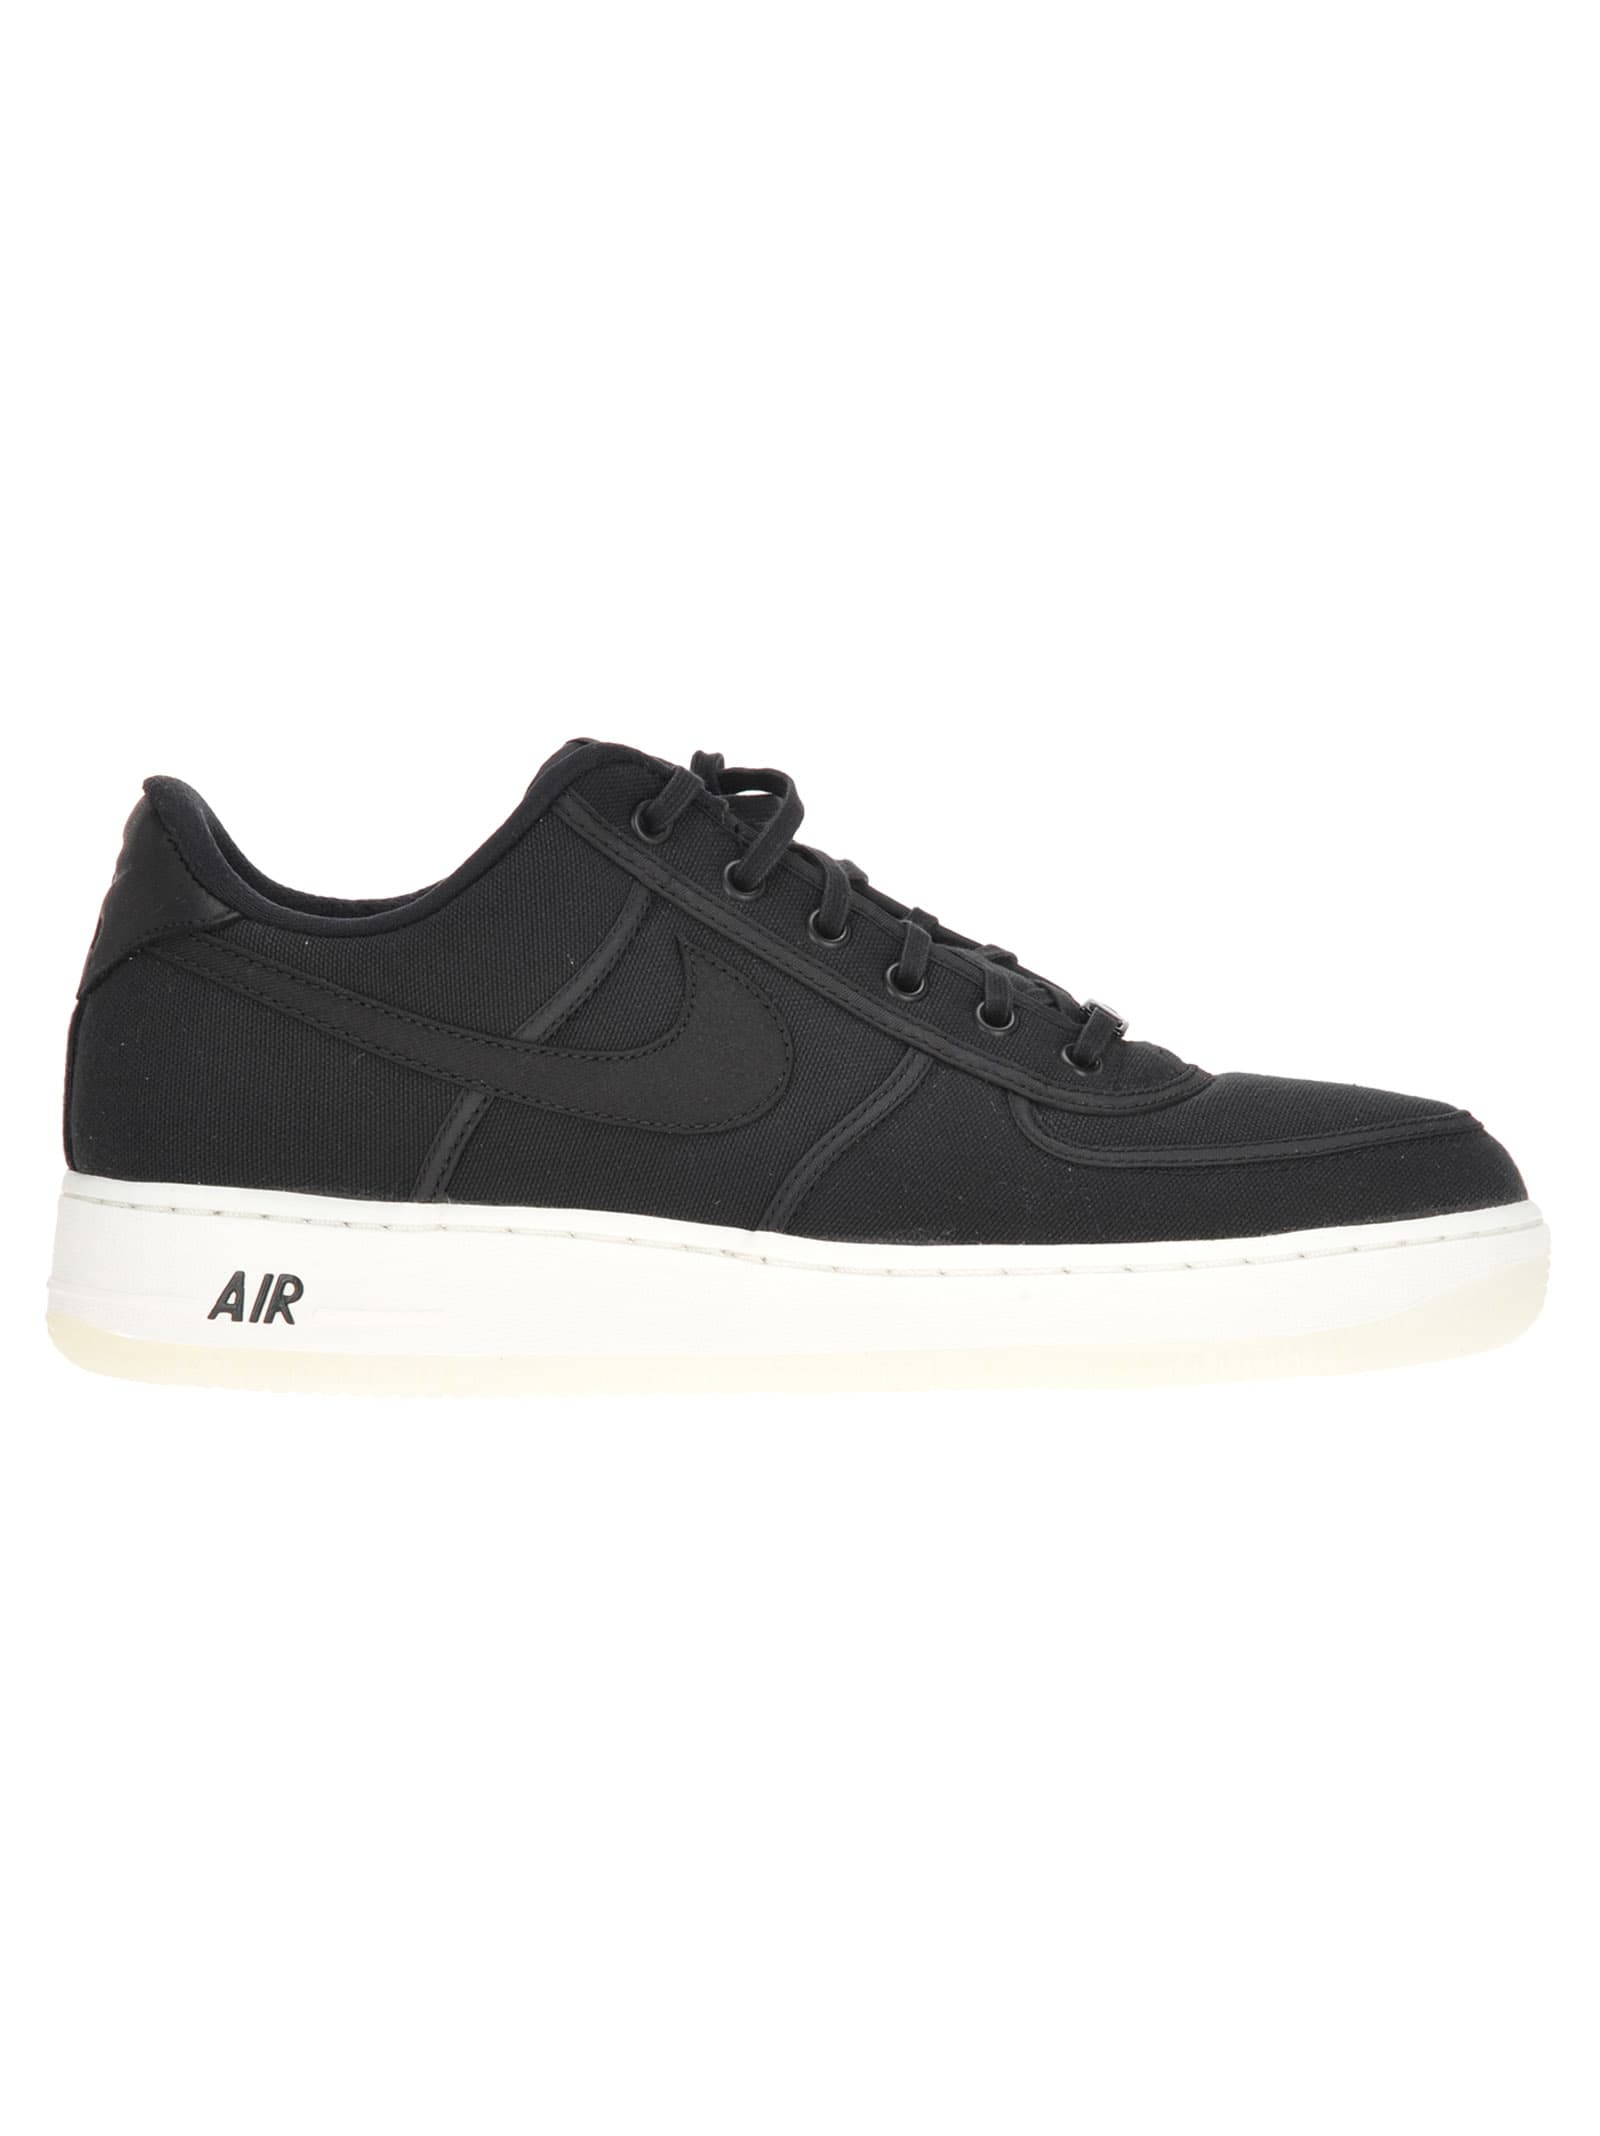 Best price on the market at italist | Nike Nike Ltd Nike Air Force 1 Low Retro Qs Cnvs Sneakers